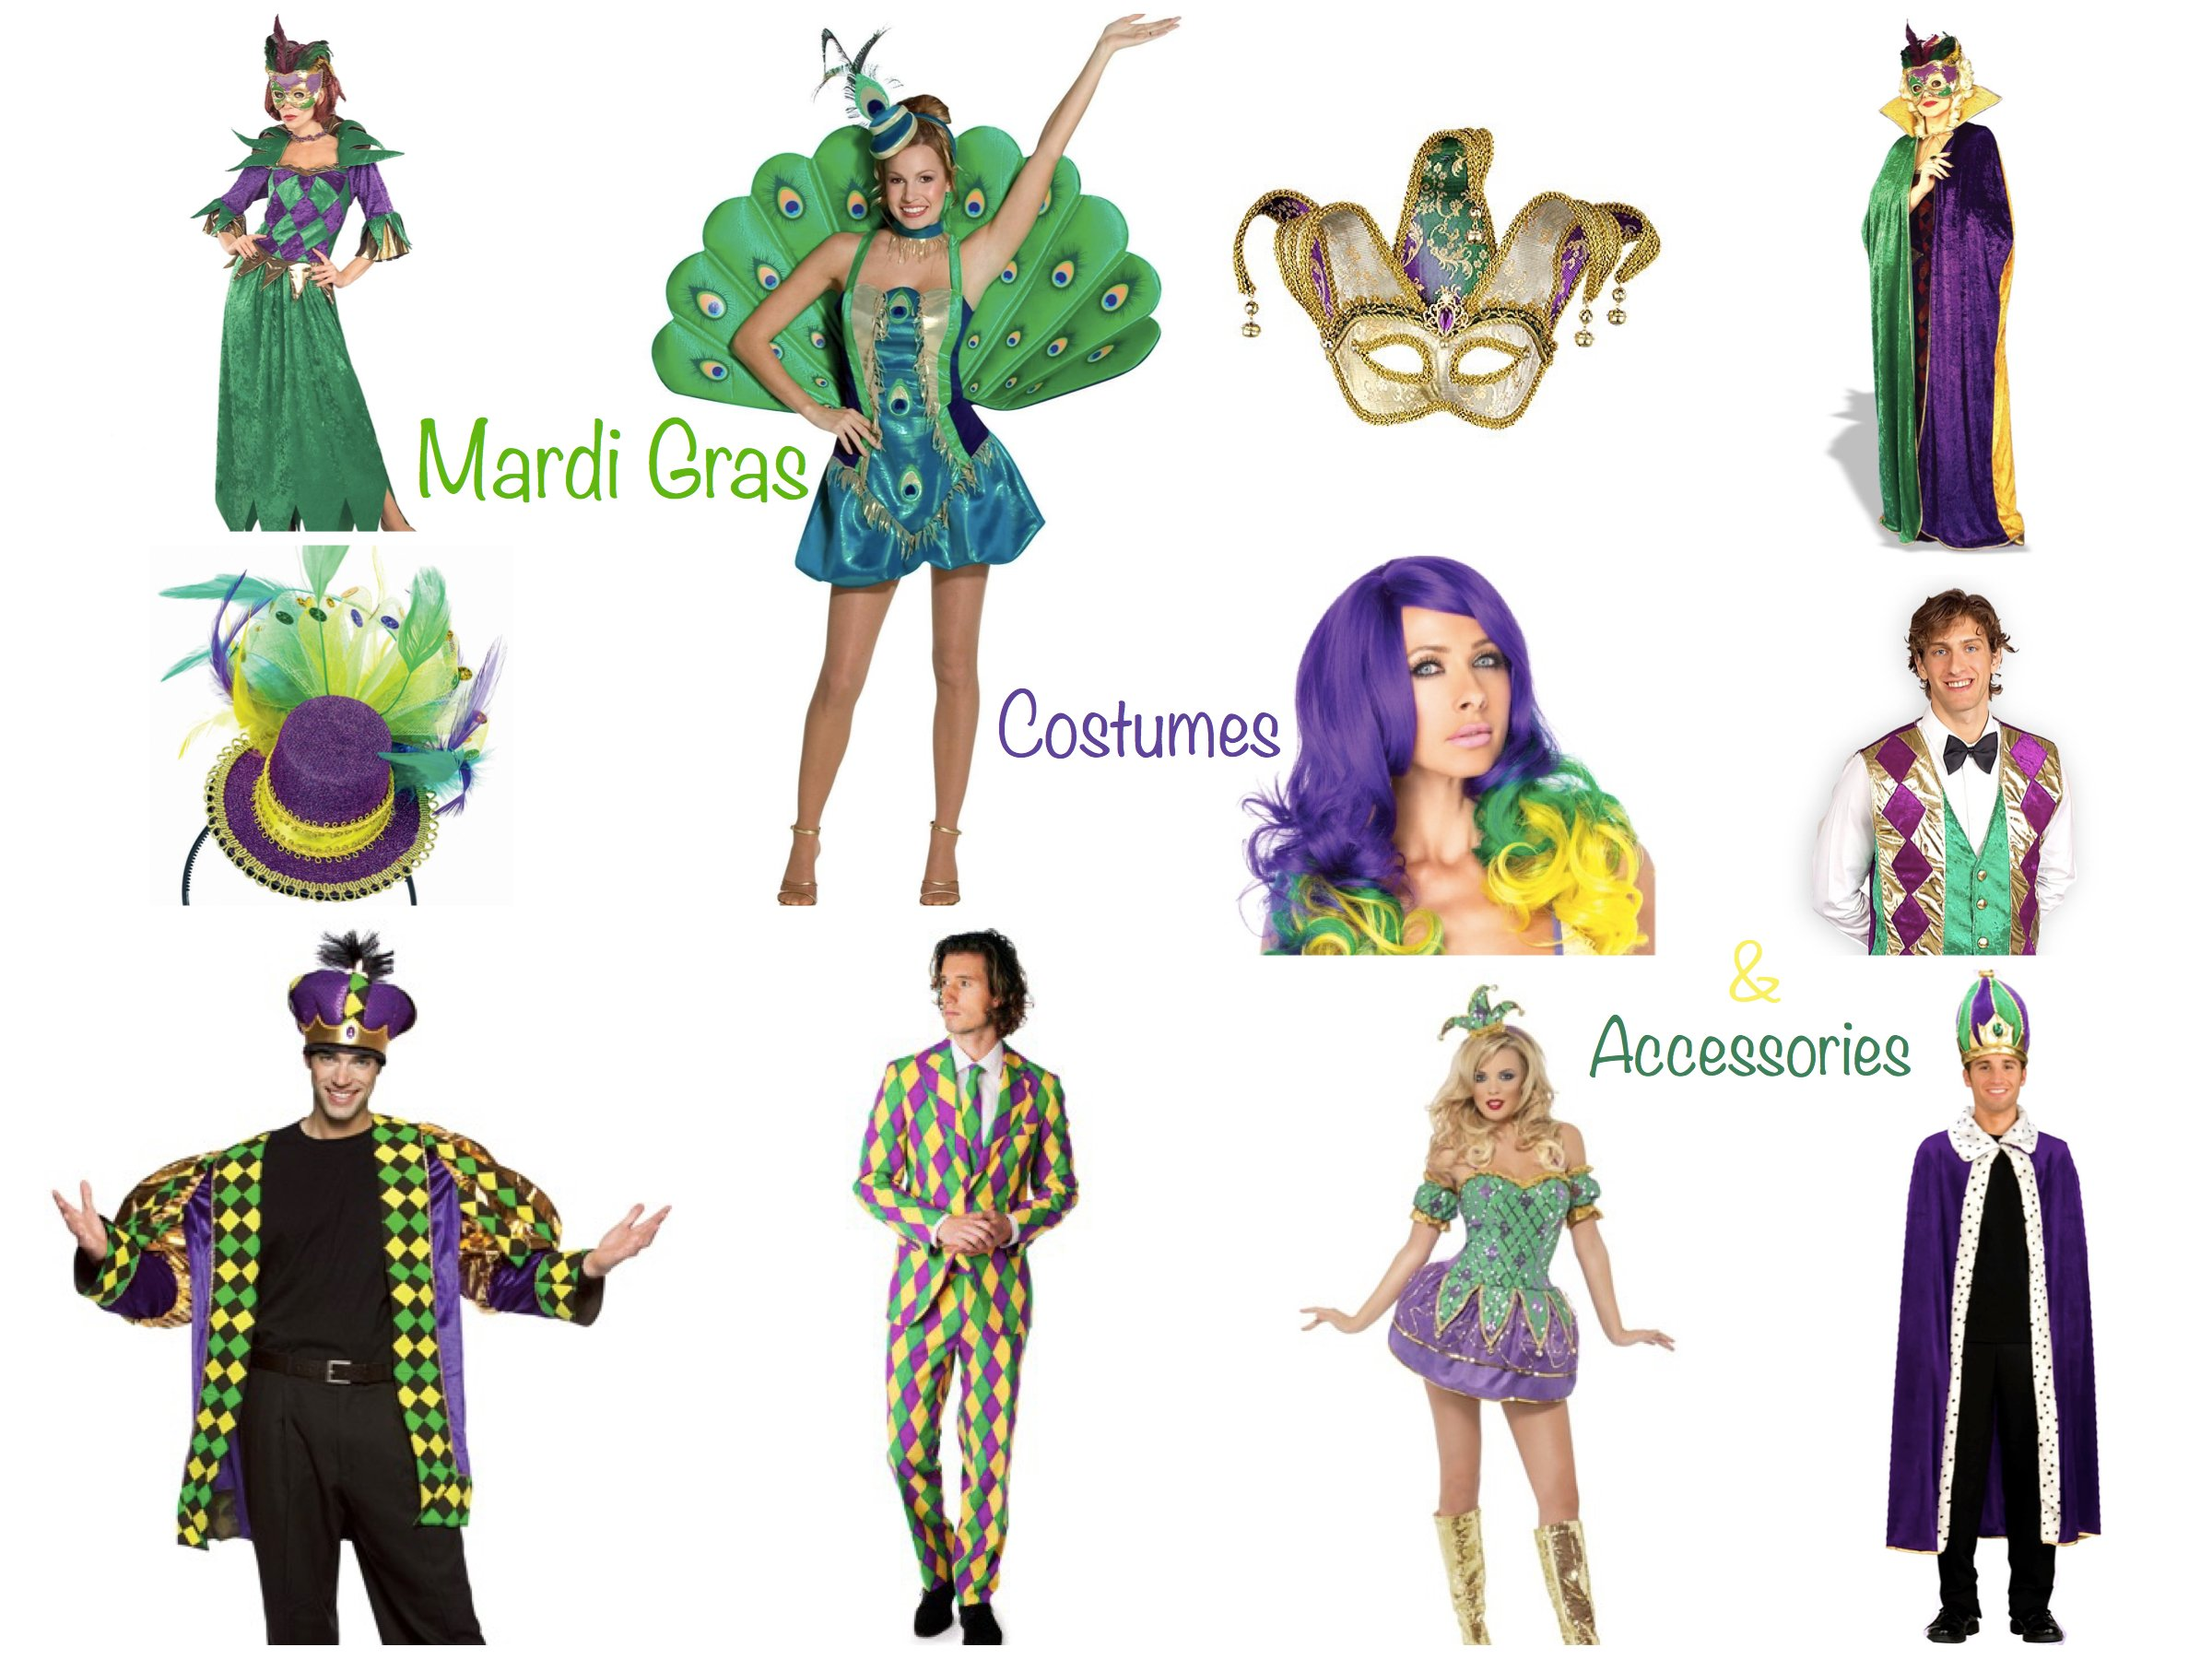 Mardi Gras Costumes & Accessories